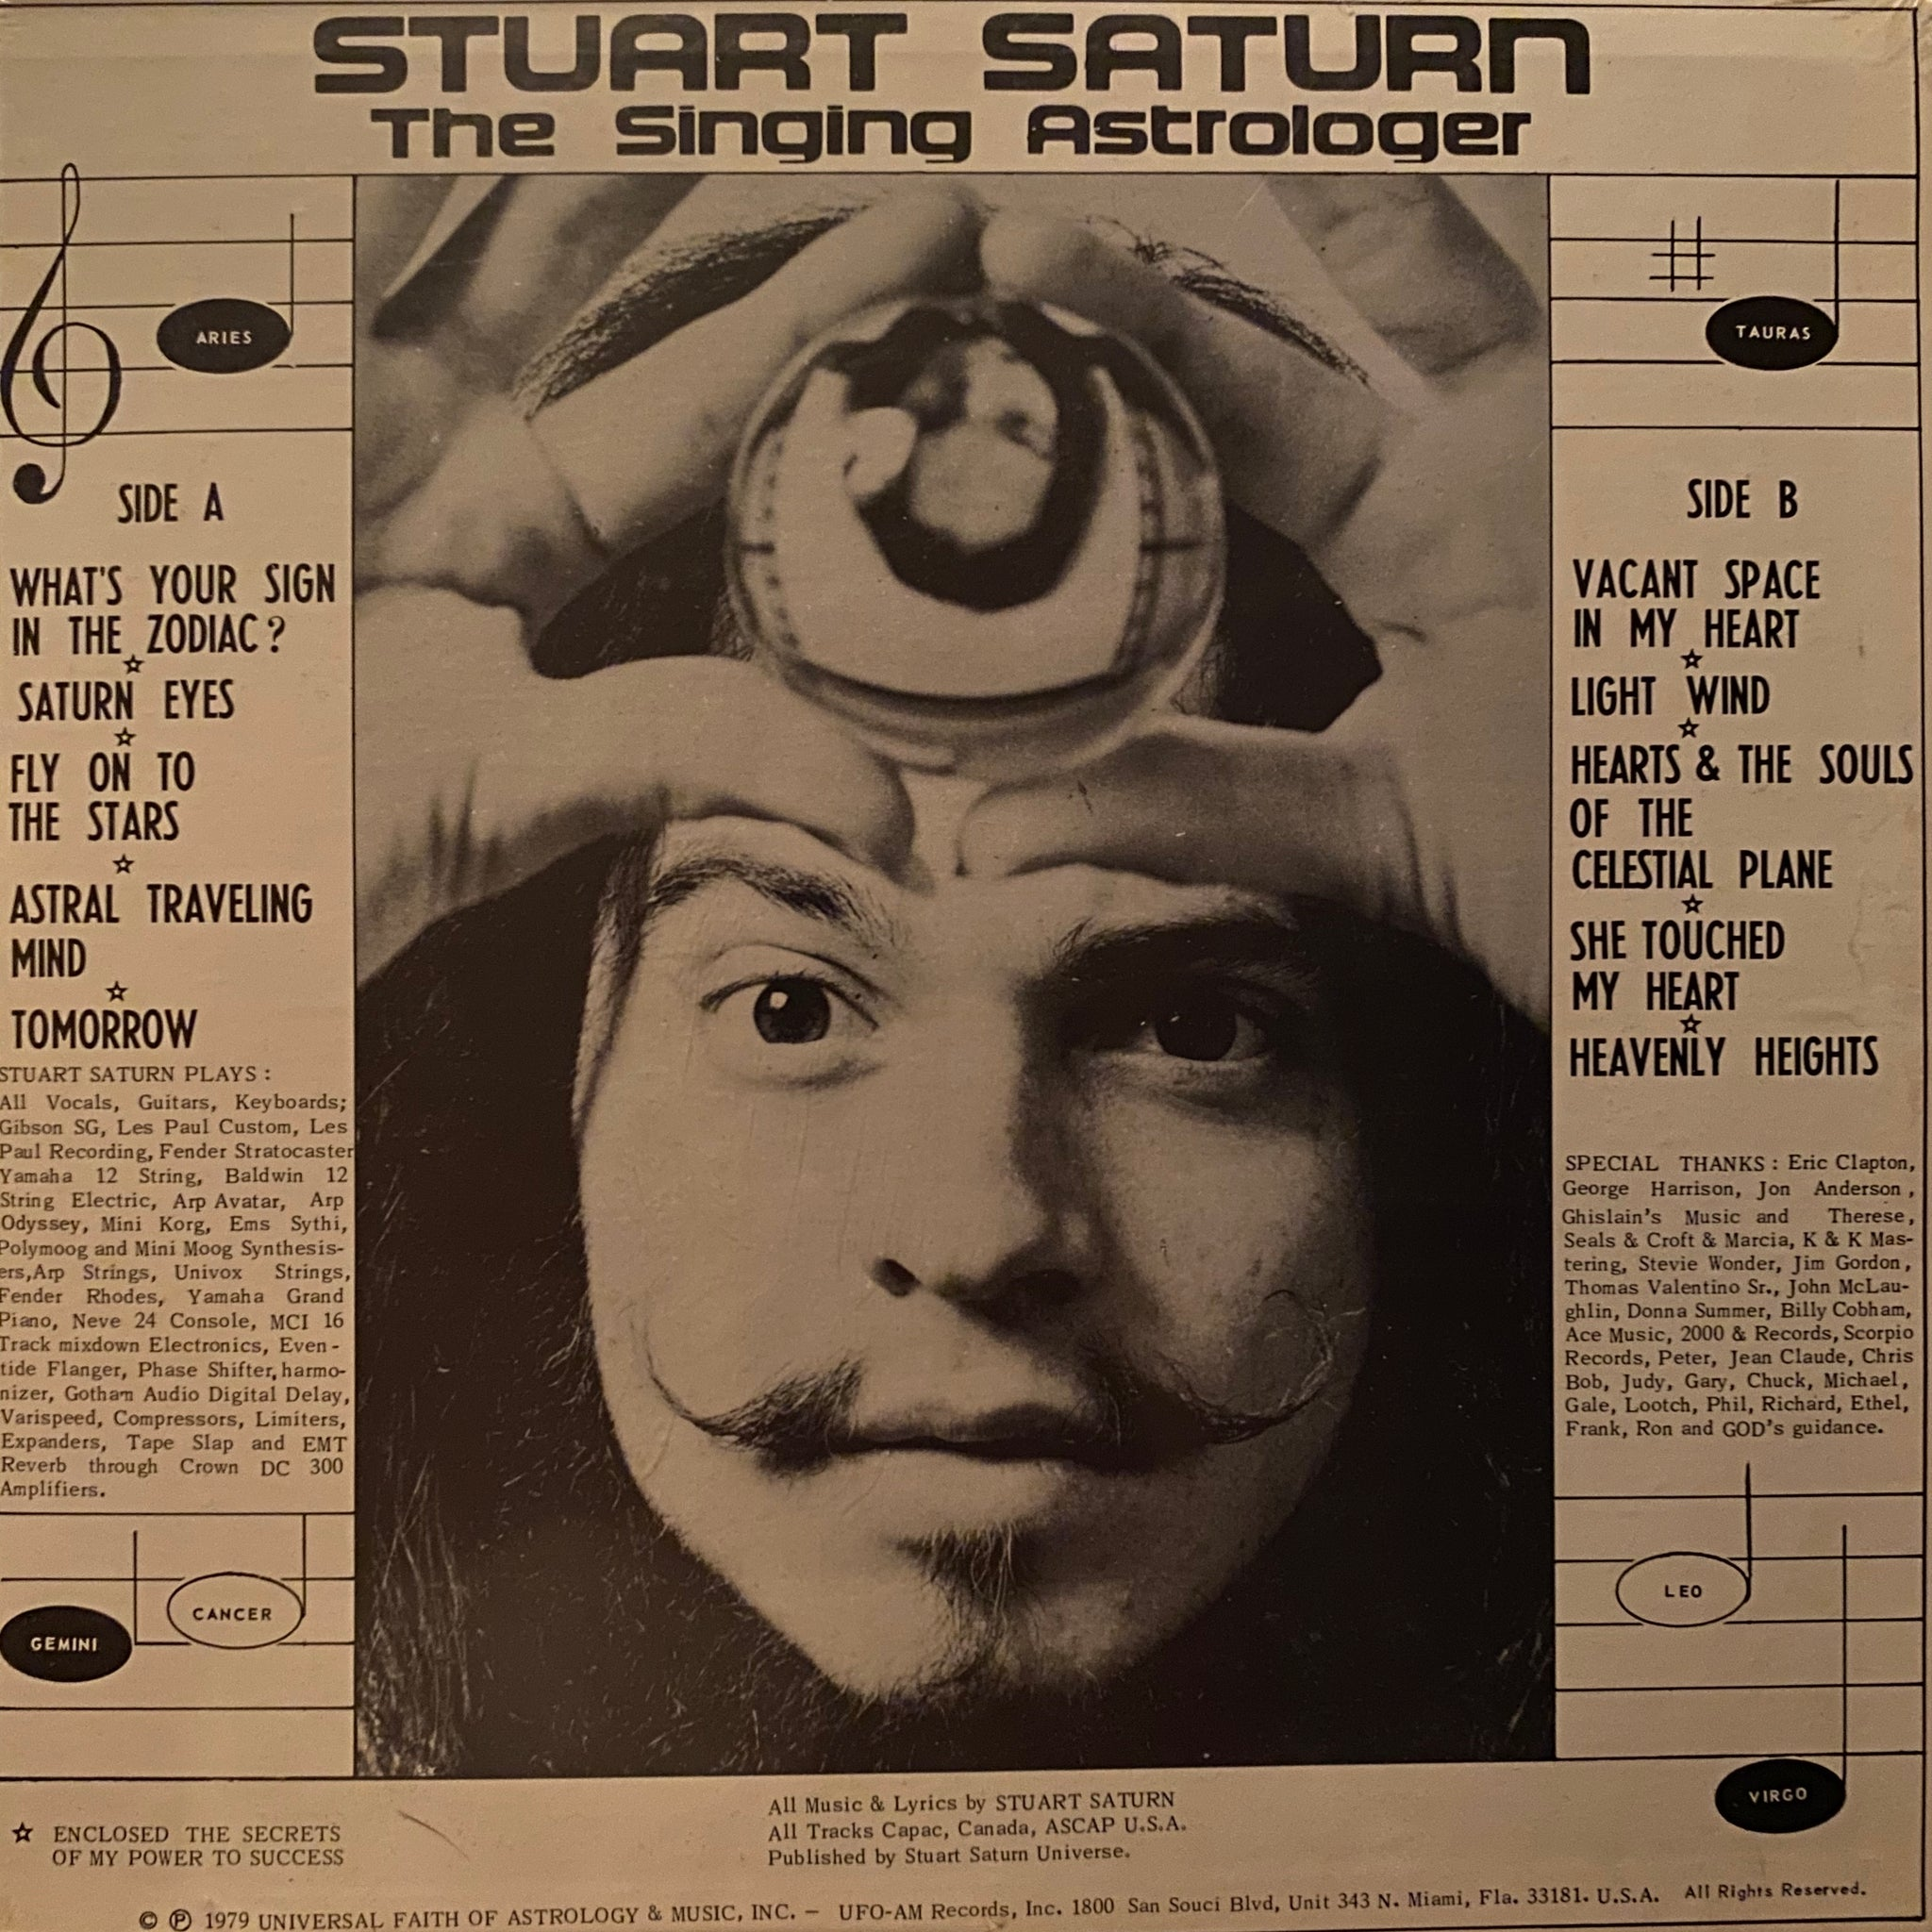 Stuart Saturn The Singing Astrologer ‎– What's Your Sign In The Zodiac?